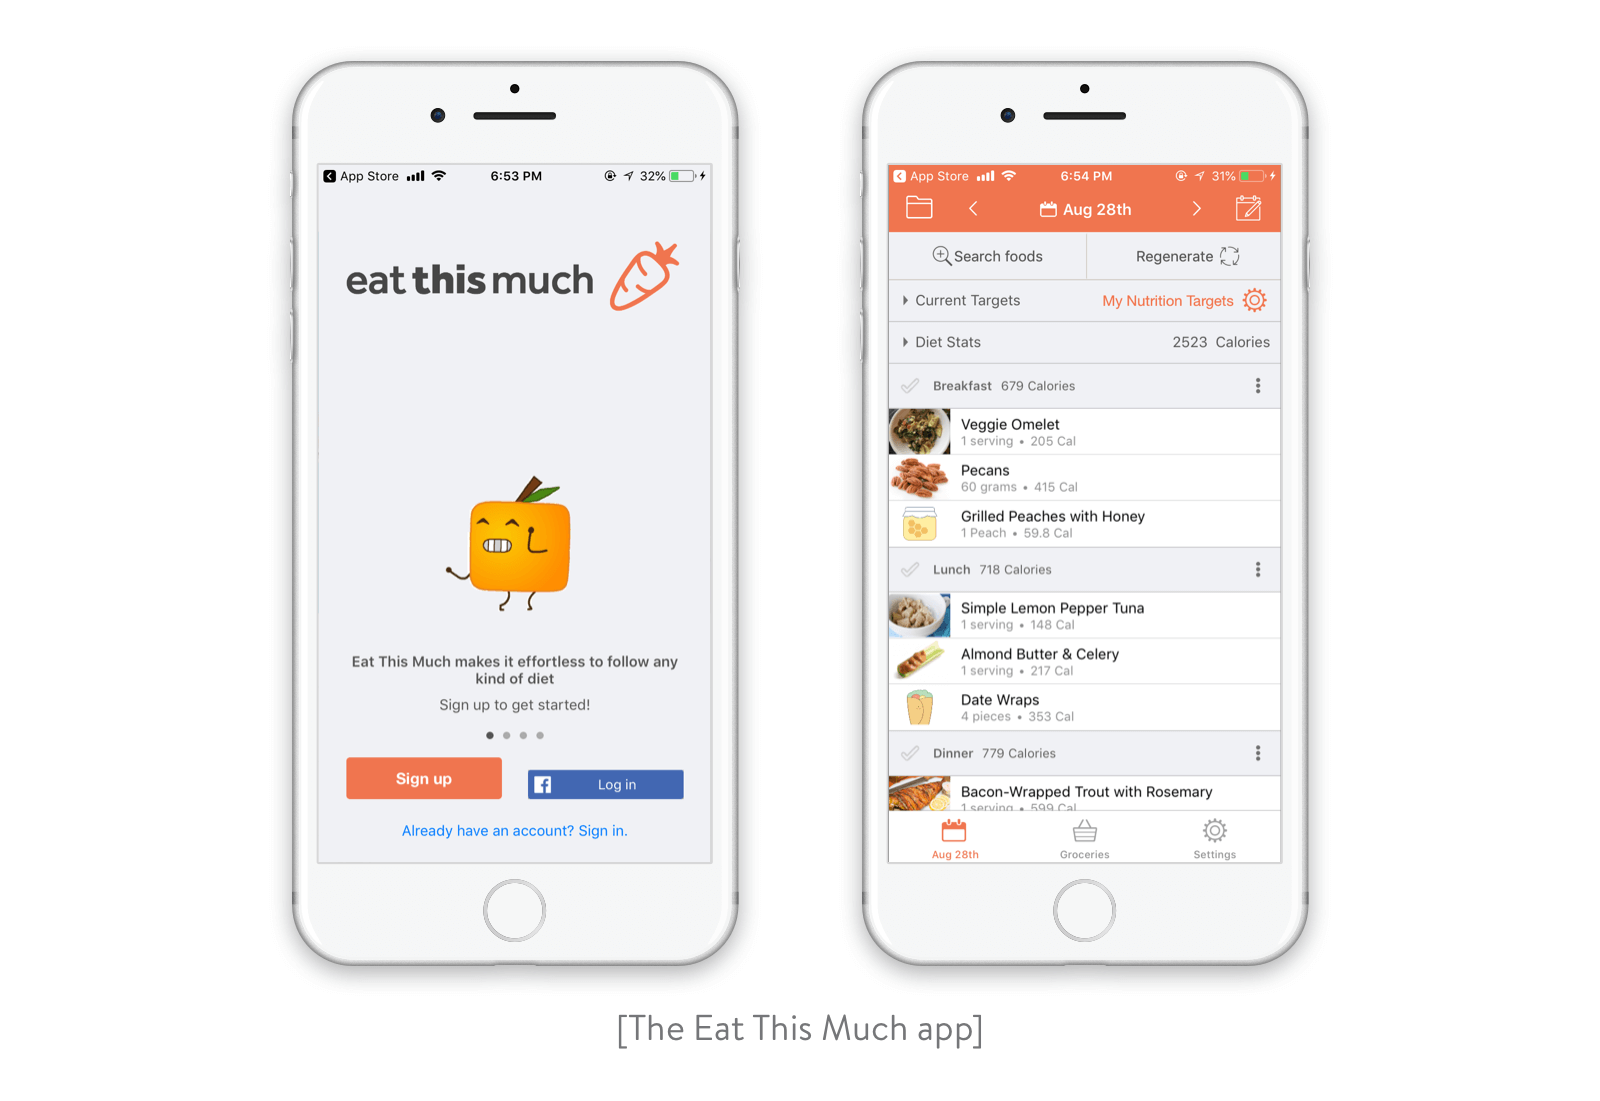 The Eat This Much app